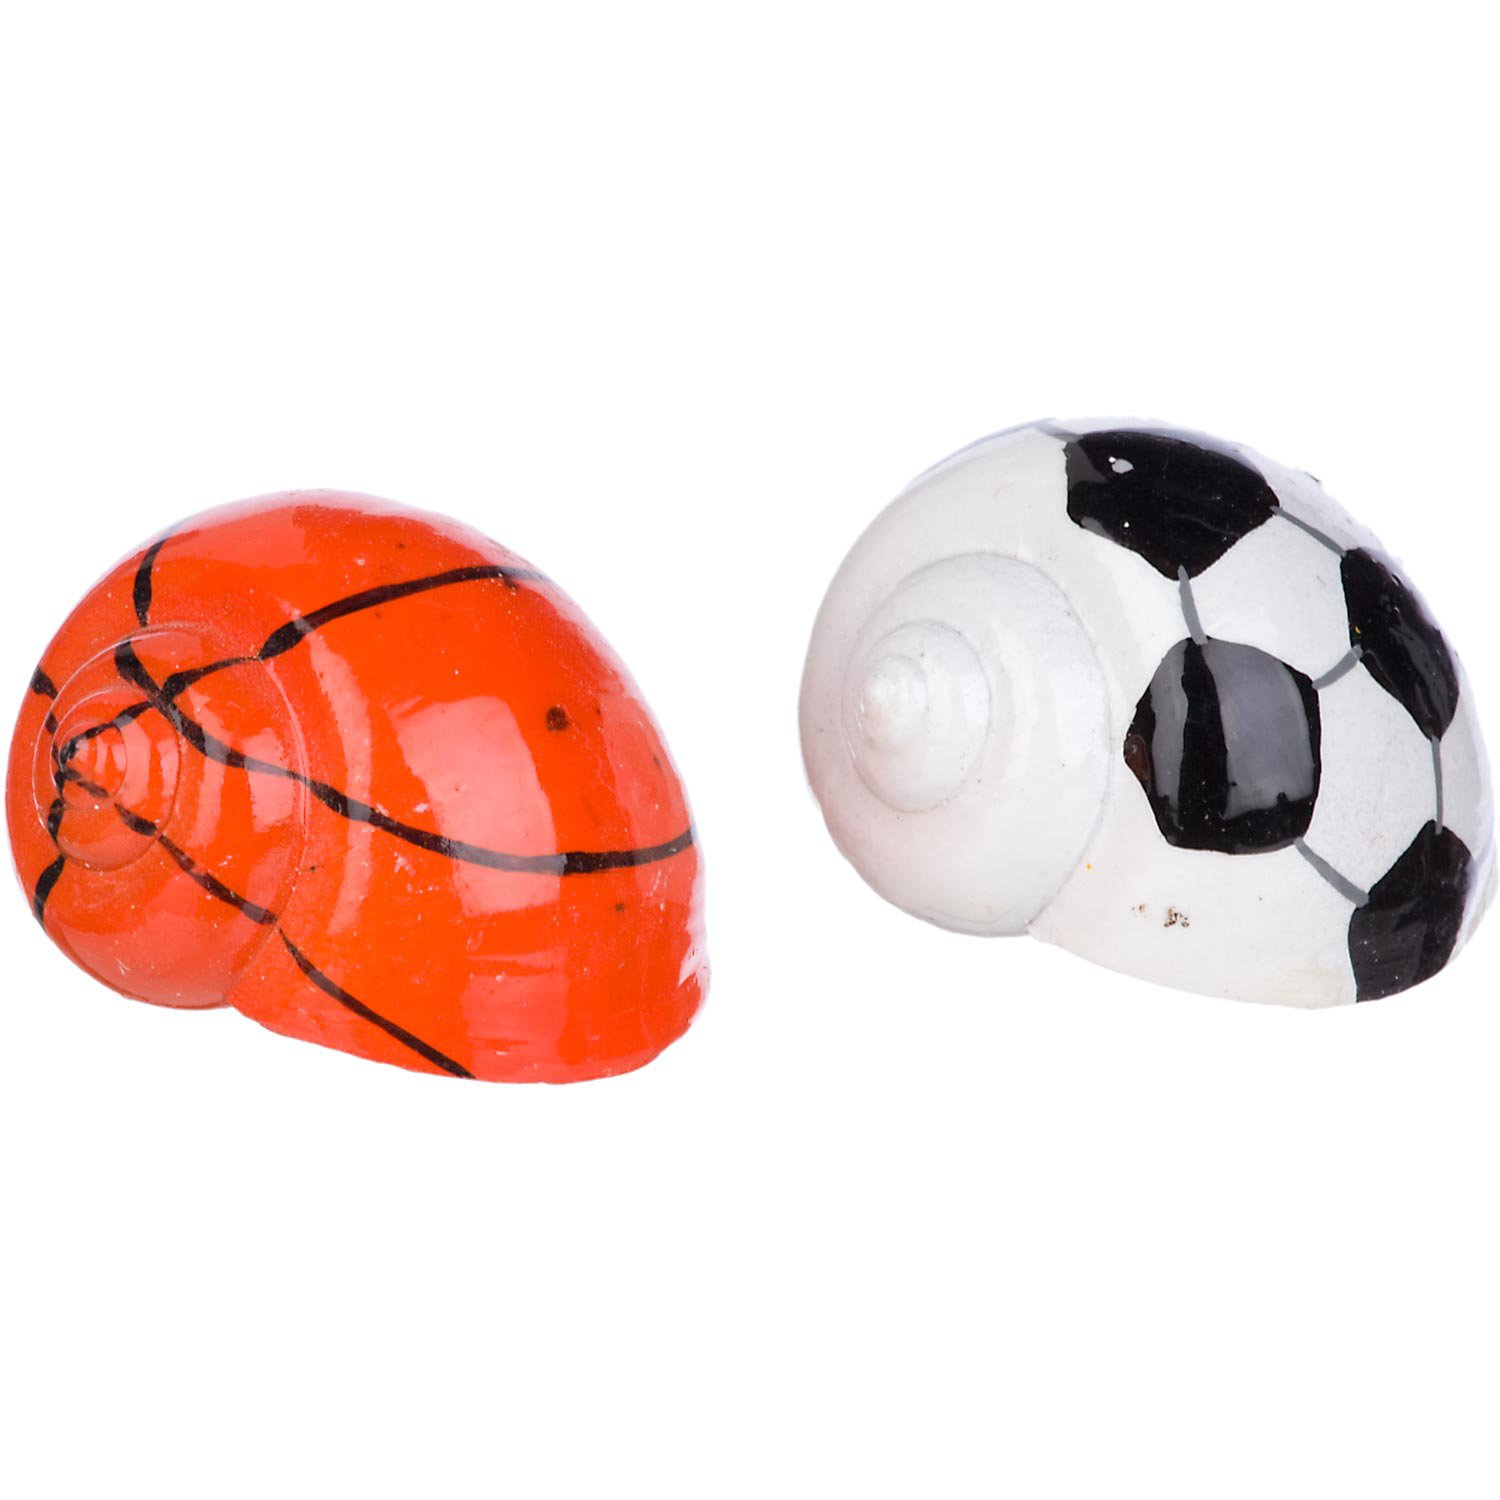 Conceptual Creations Hermit Crab Sports Shells